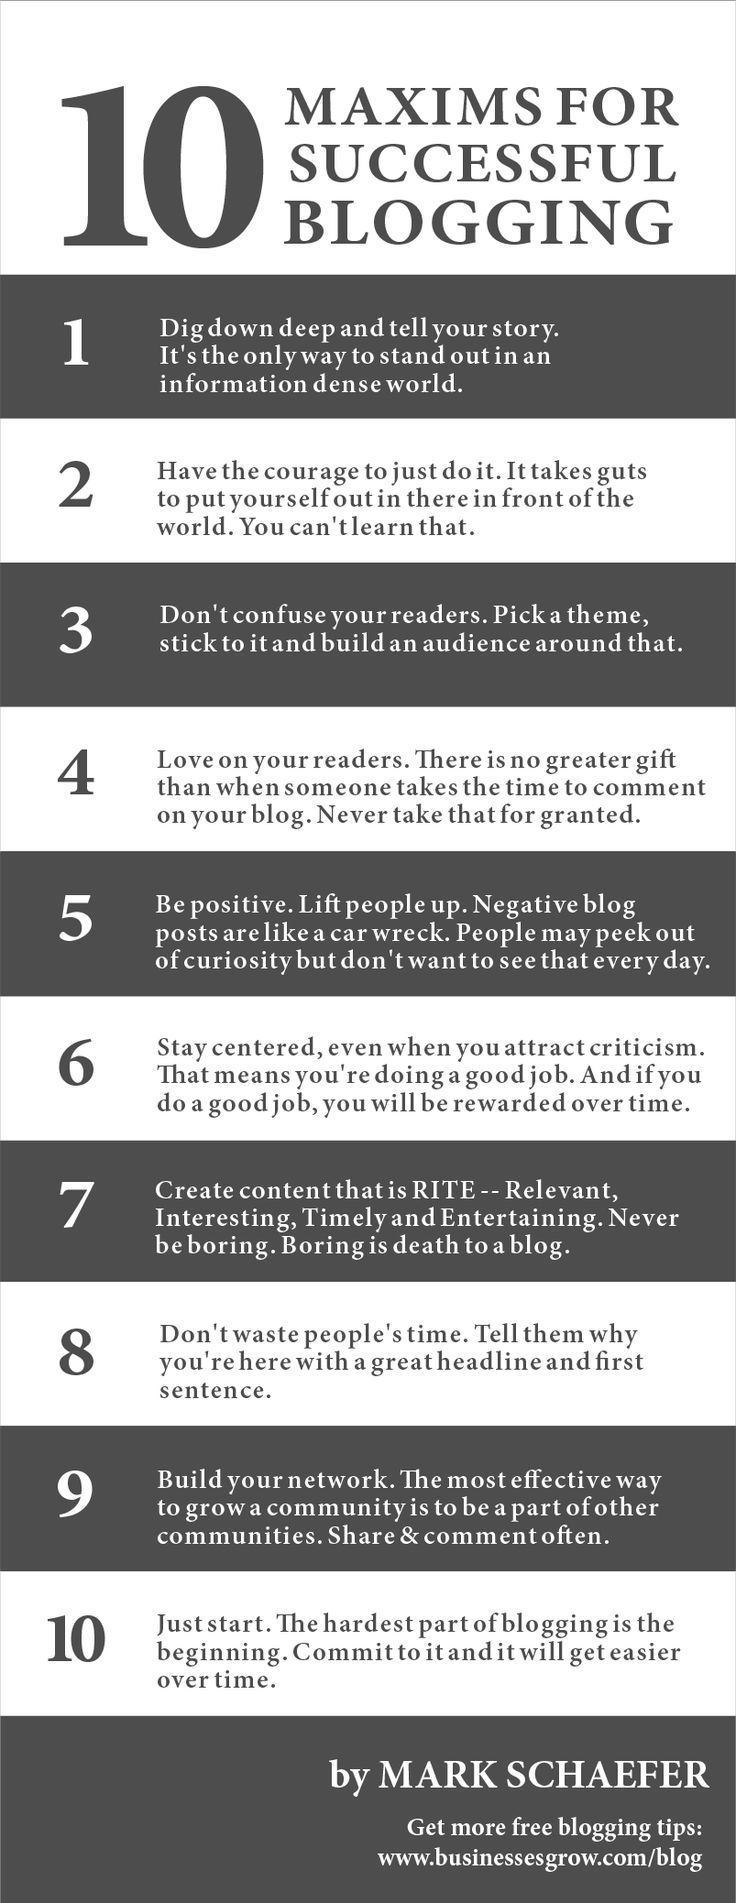 10 maxims of Successful Blogging